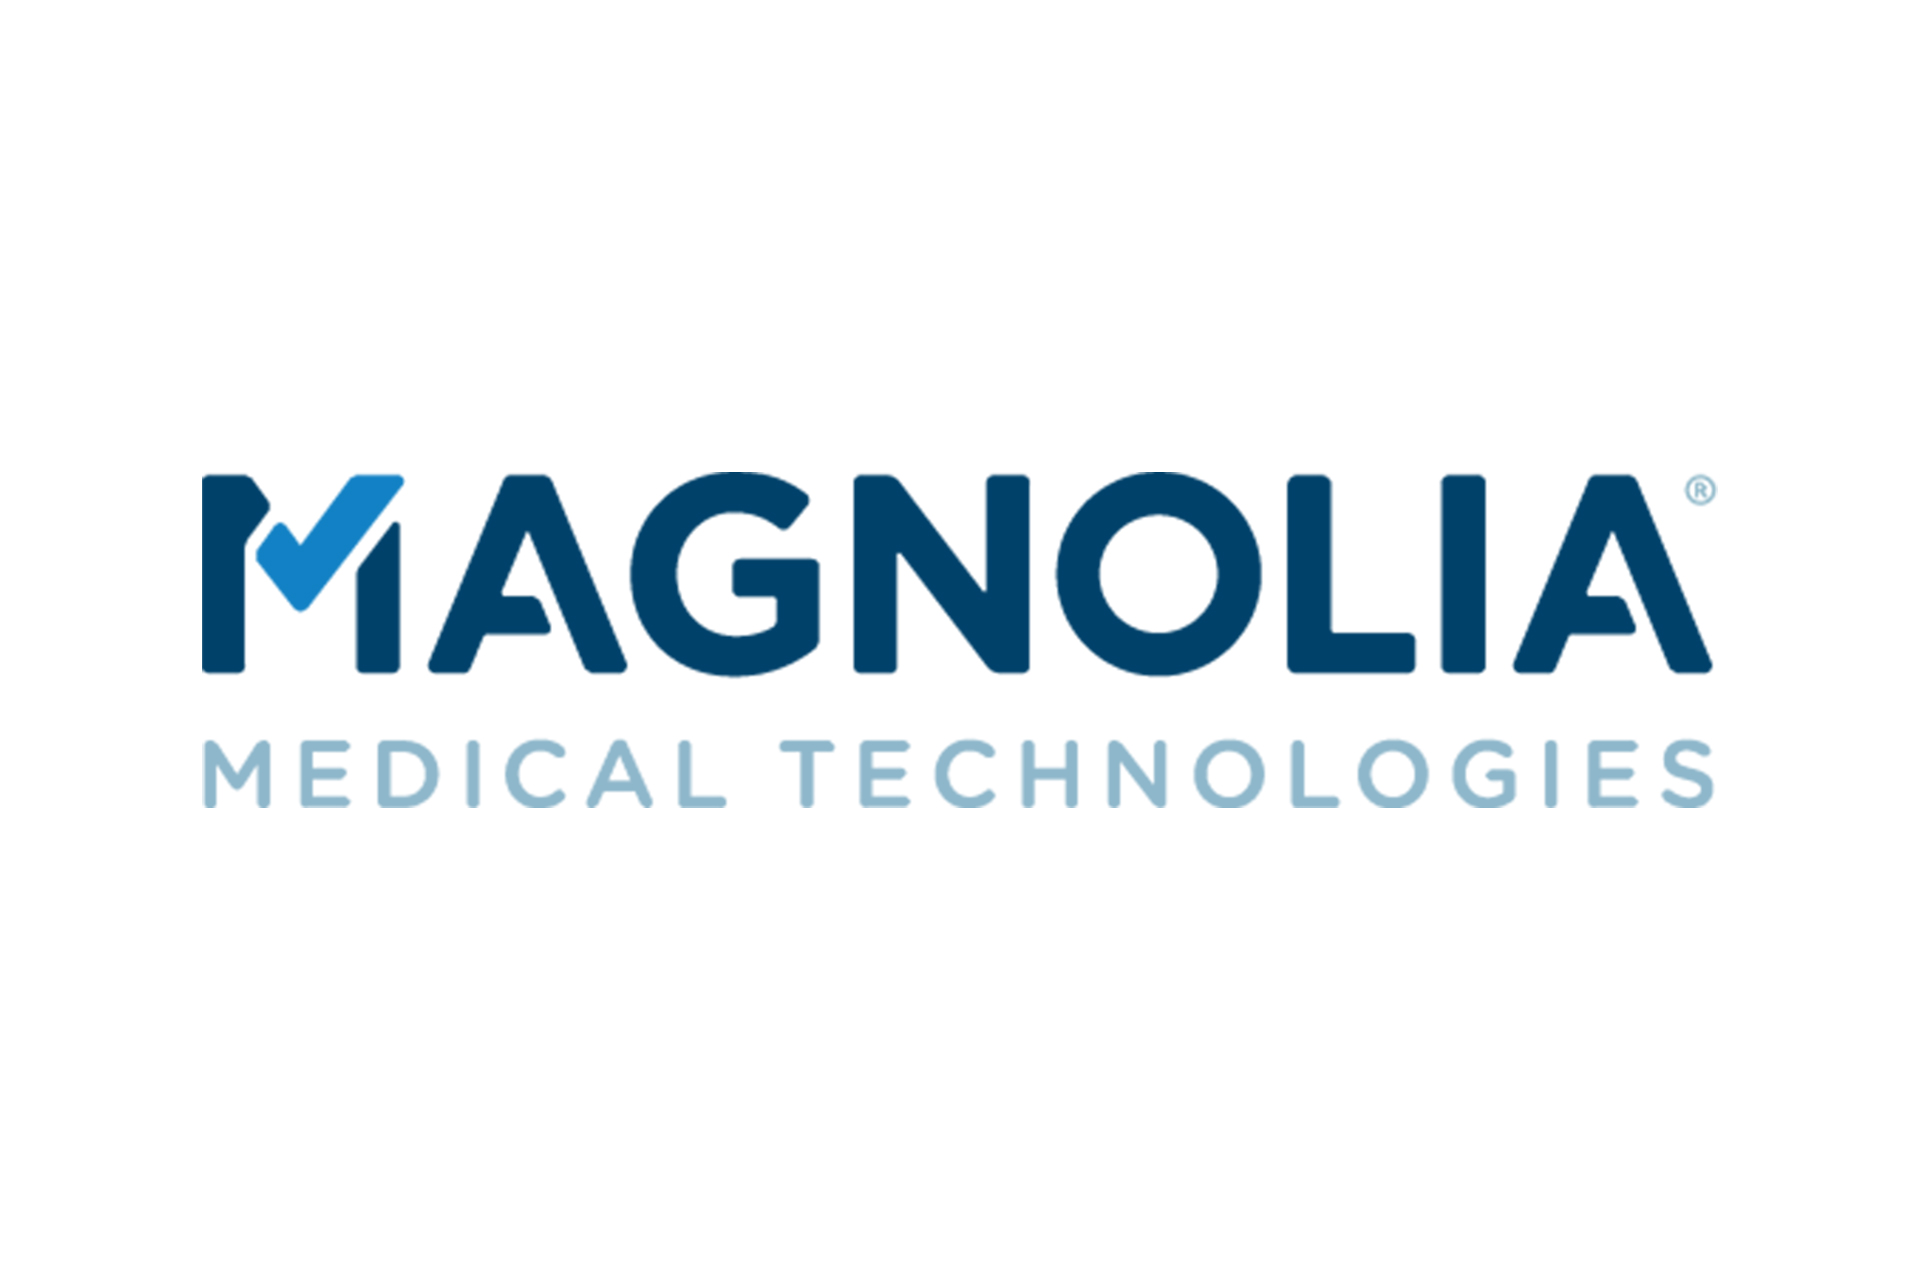 Magnolia-Medical-Technologies-OpenGraph